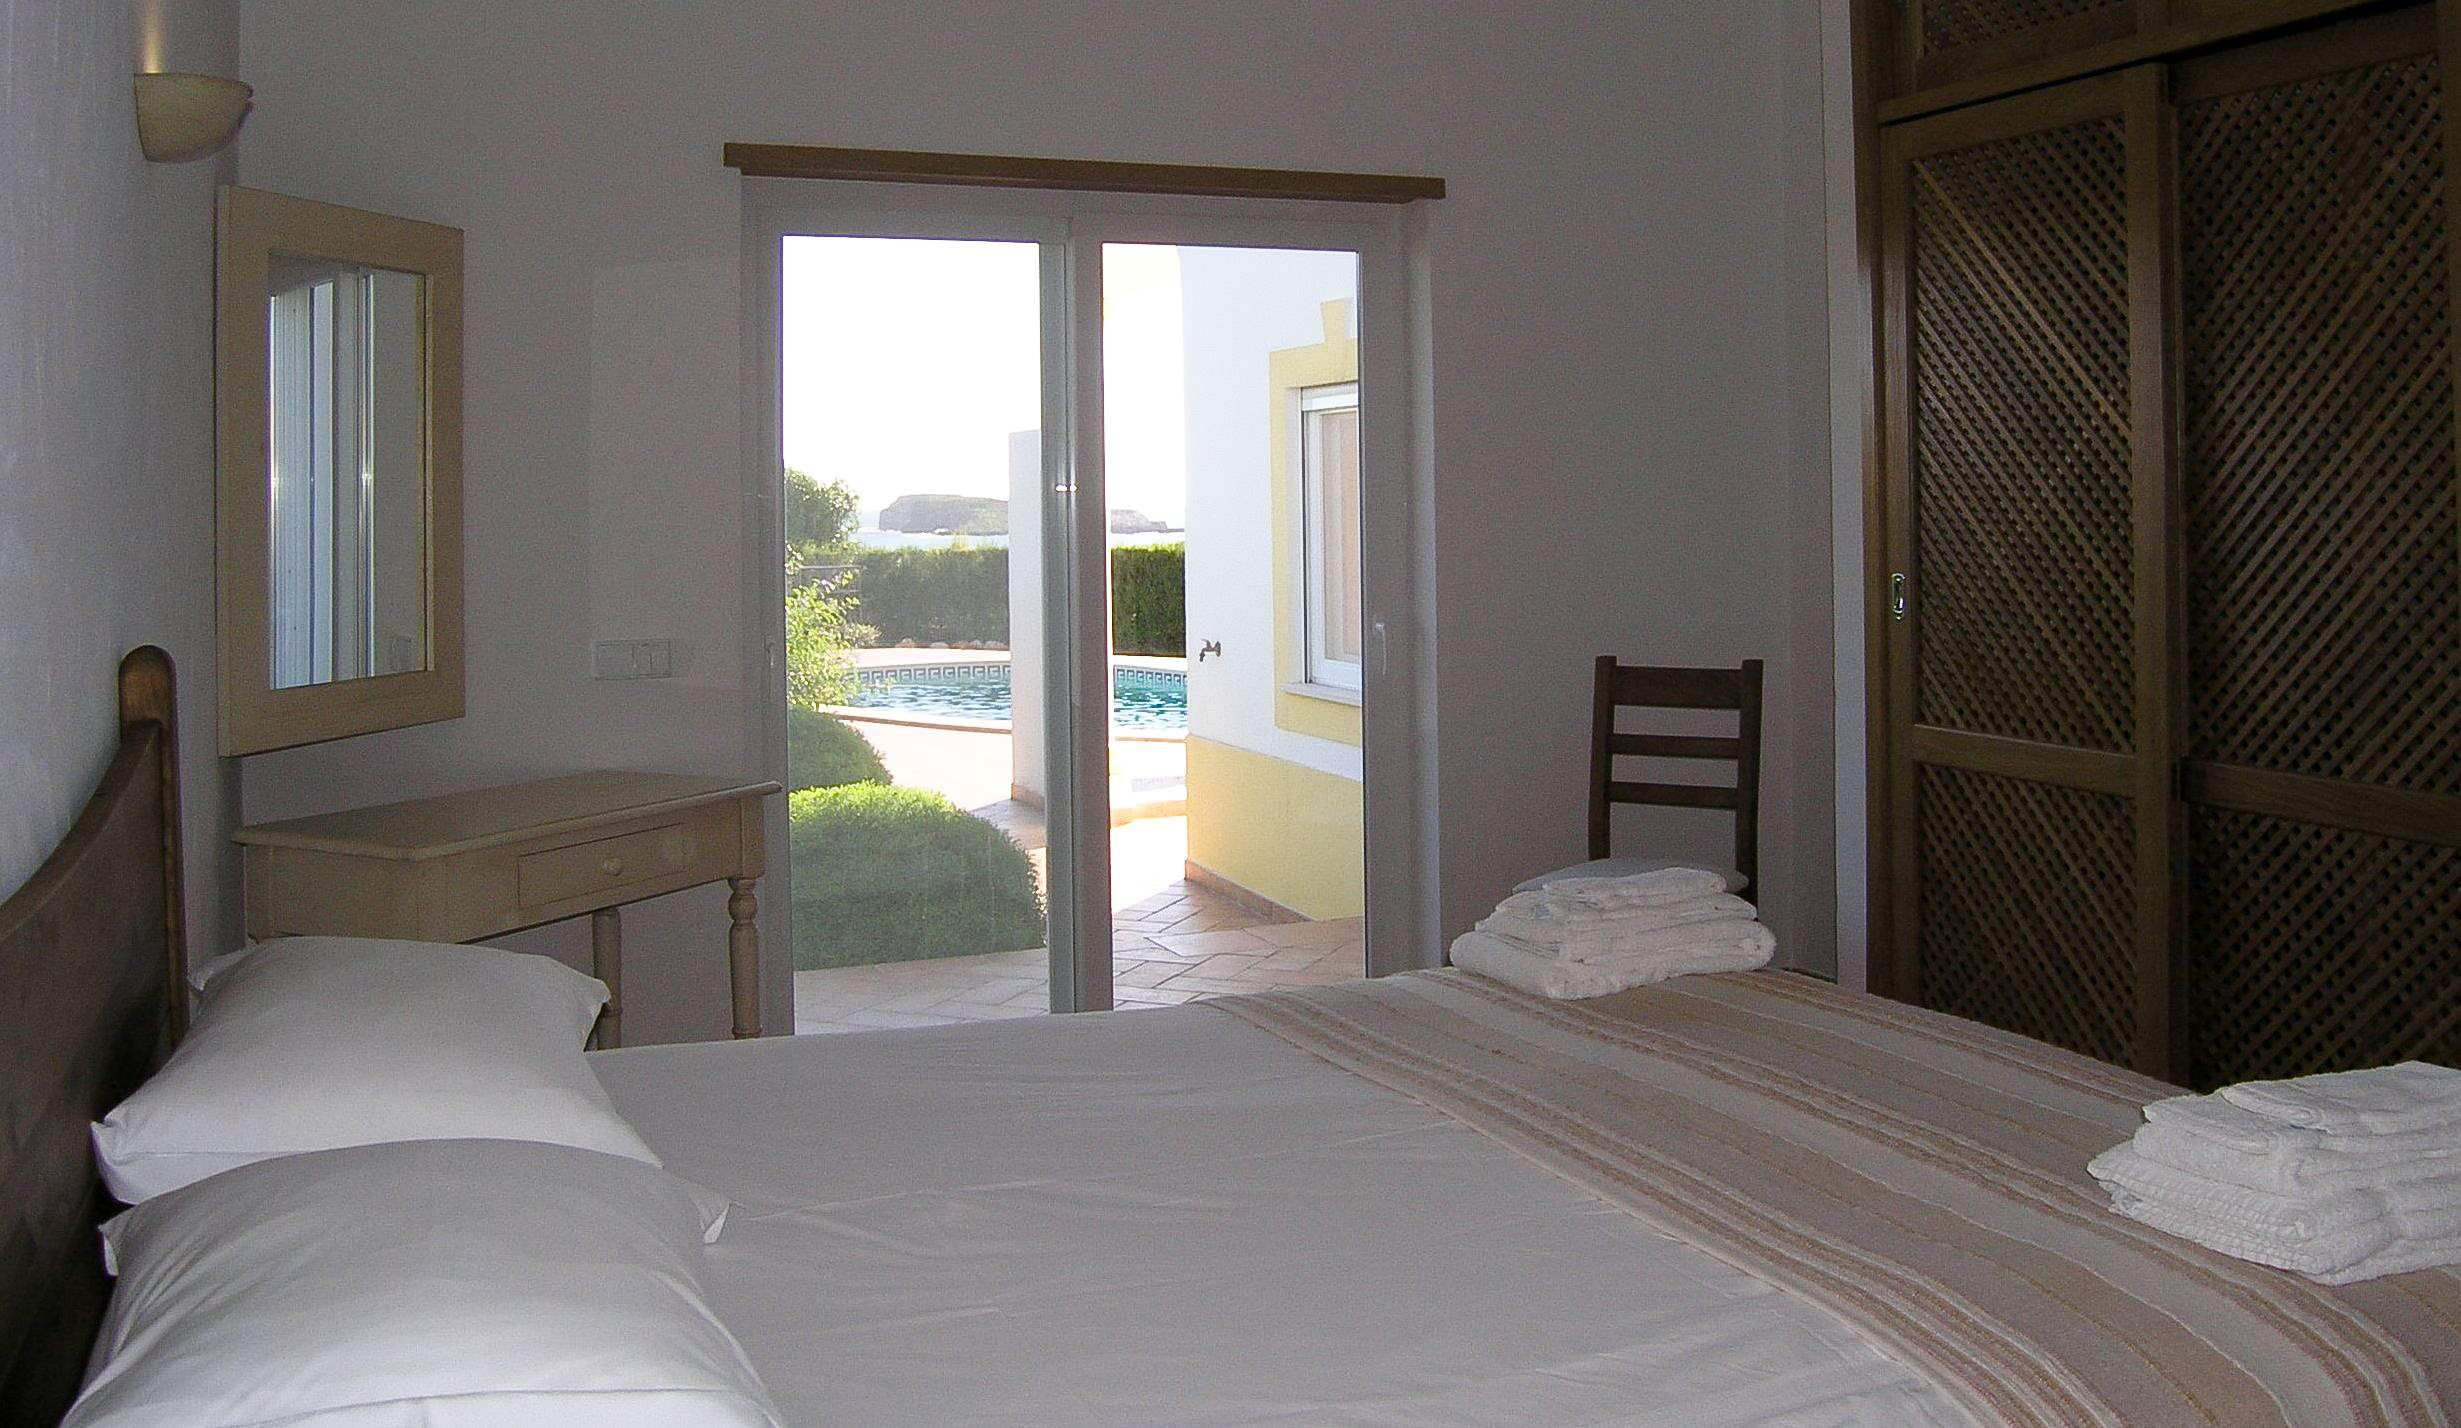 Martinhal Luxury Villa No.10, Three Bedroom Villa, 3 bedroom villa in Martinhal Sagres, Algarve Photo #11